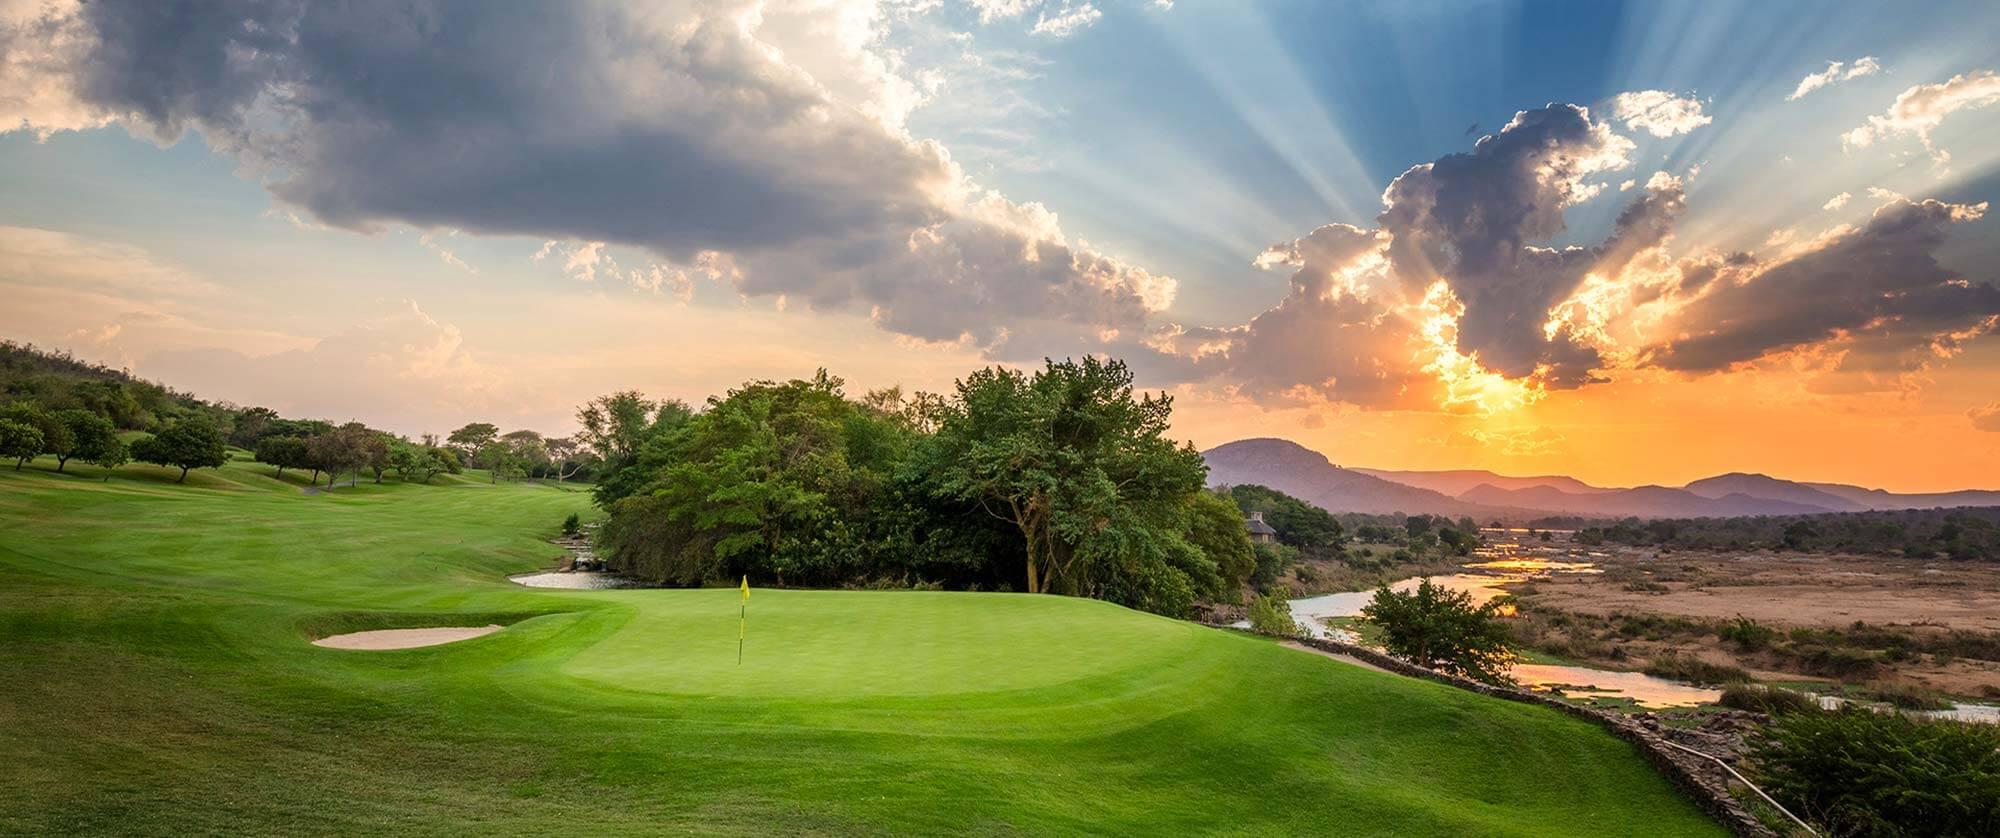 Leopard Creek Country Club Golf Course, South Africa - Rovos Rail Luxury Golf Safari Tour